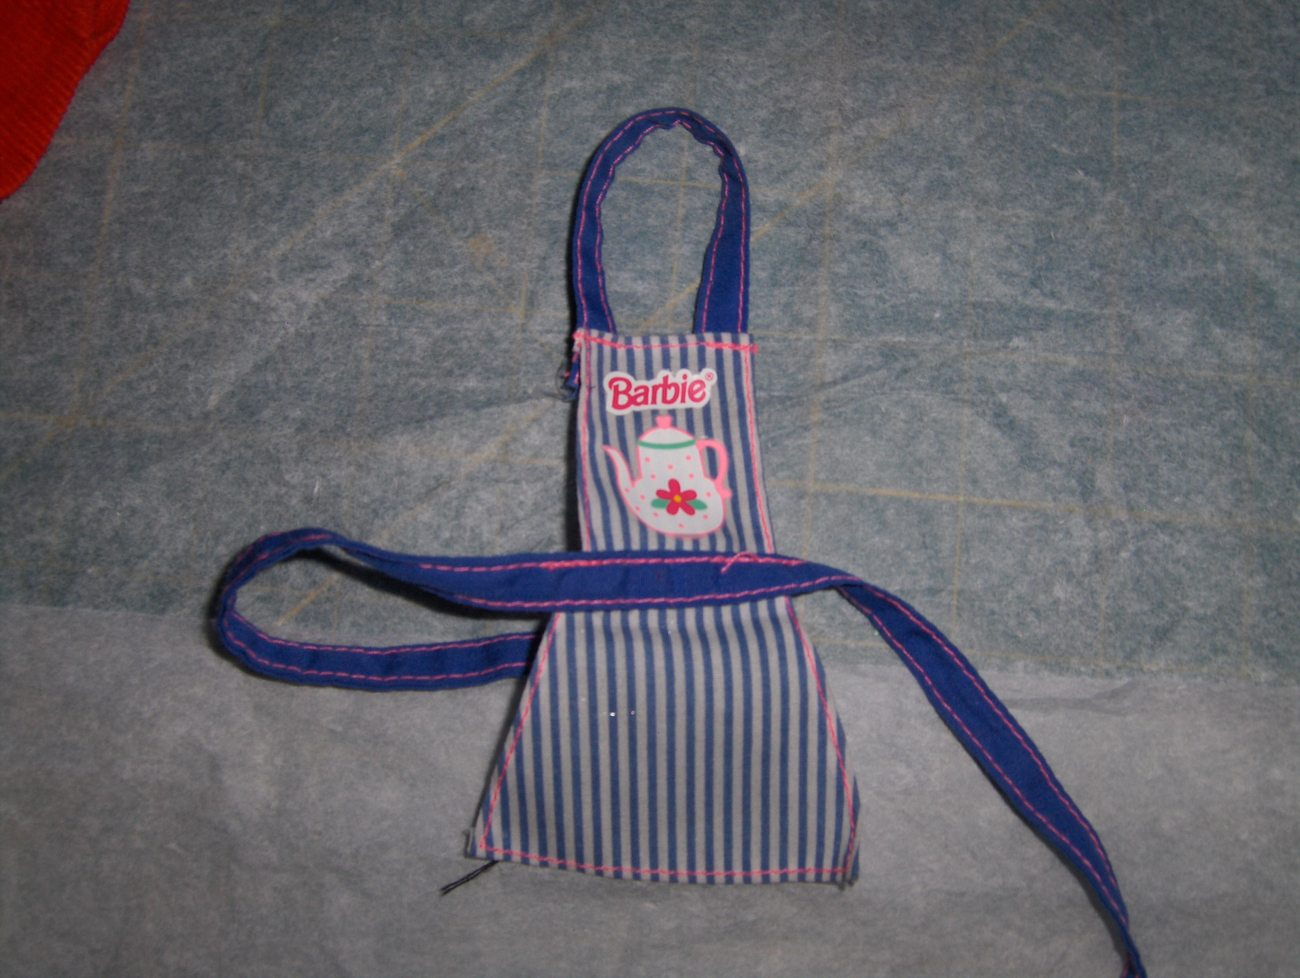 Barbie Waitress Apron